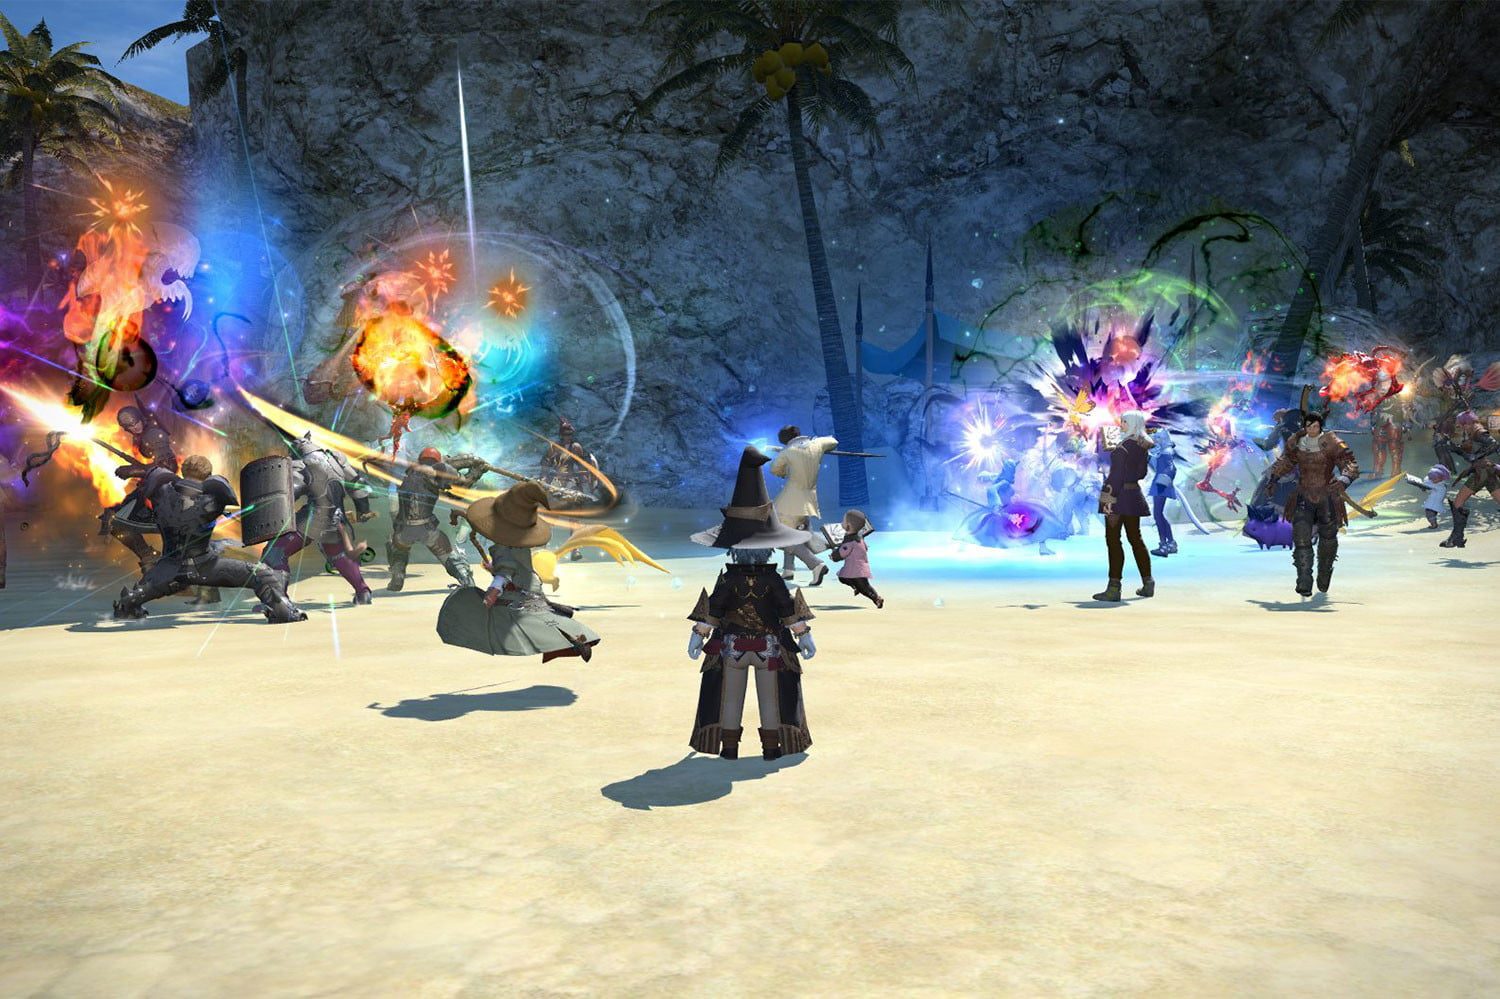 FFXIV: Beginner's Guide - From Kefka to Card Games | Digital Trends